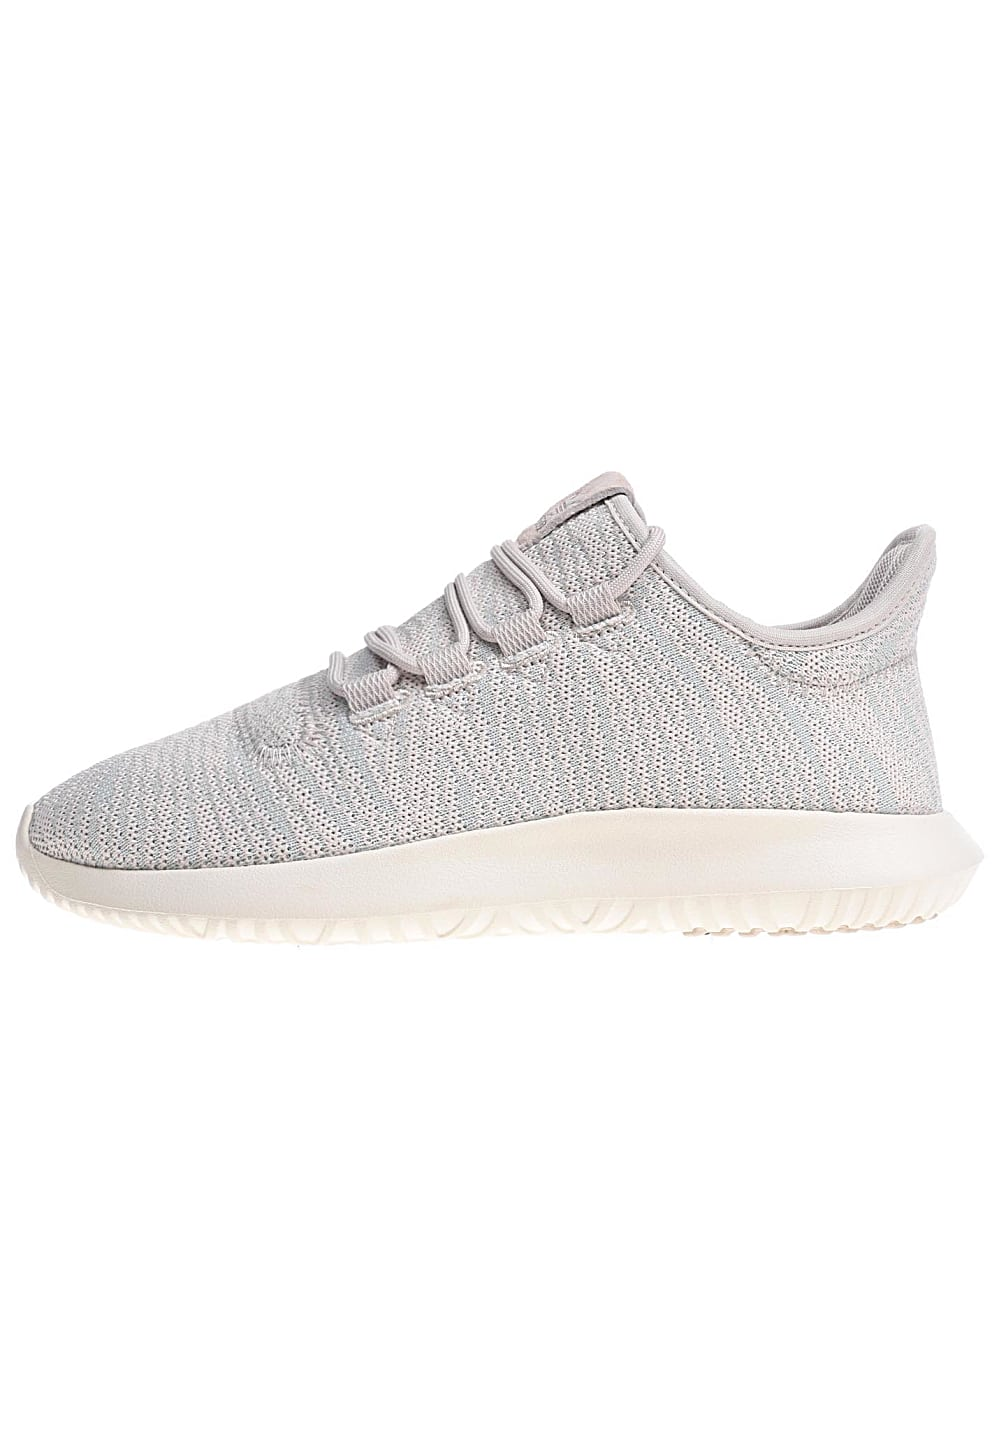 online store 928dc 05a20 ADIDAS ORIGINALS Tubular Shadow - Sneakers for Women - Beige